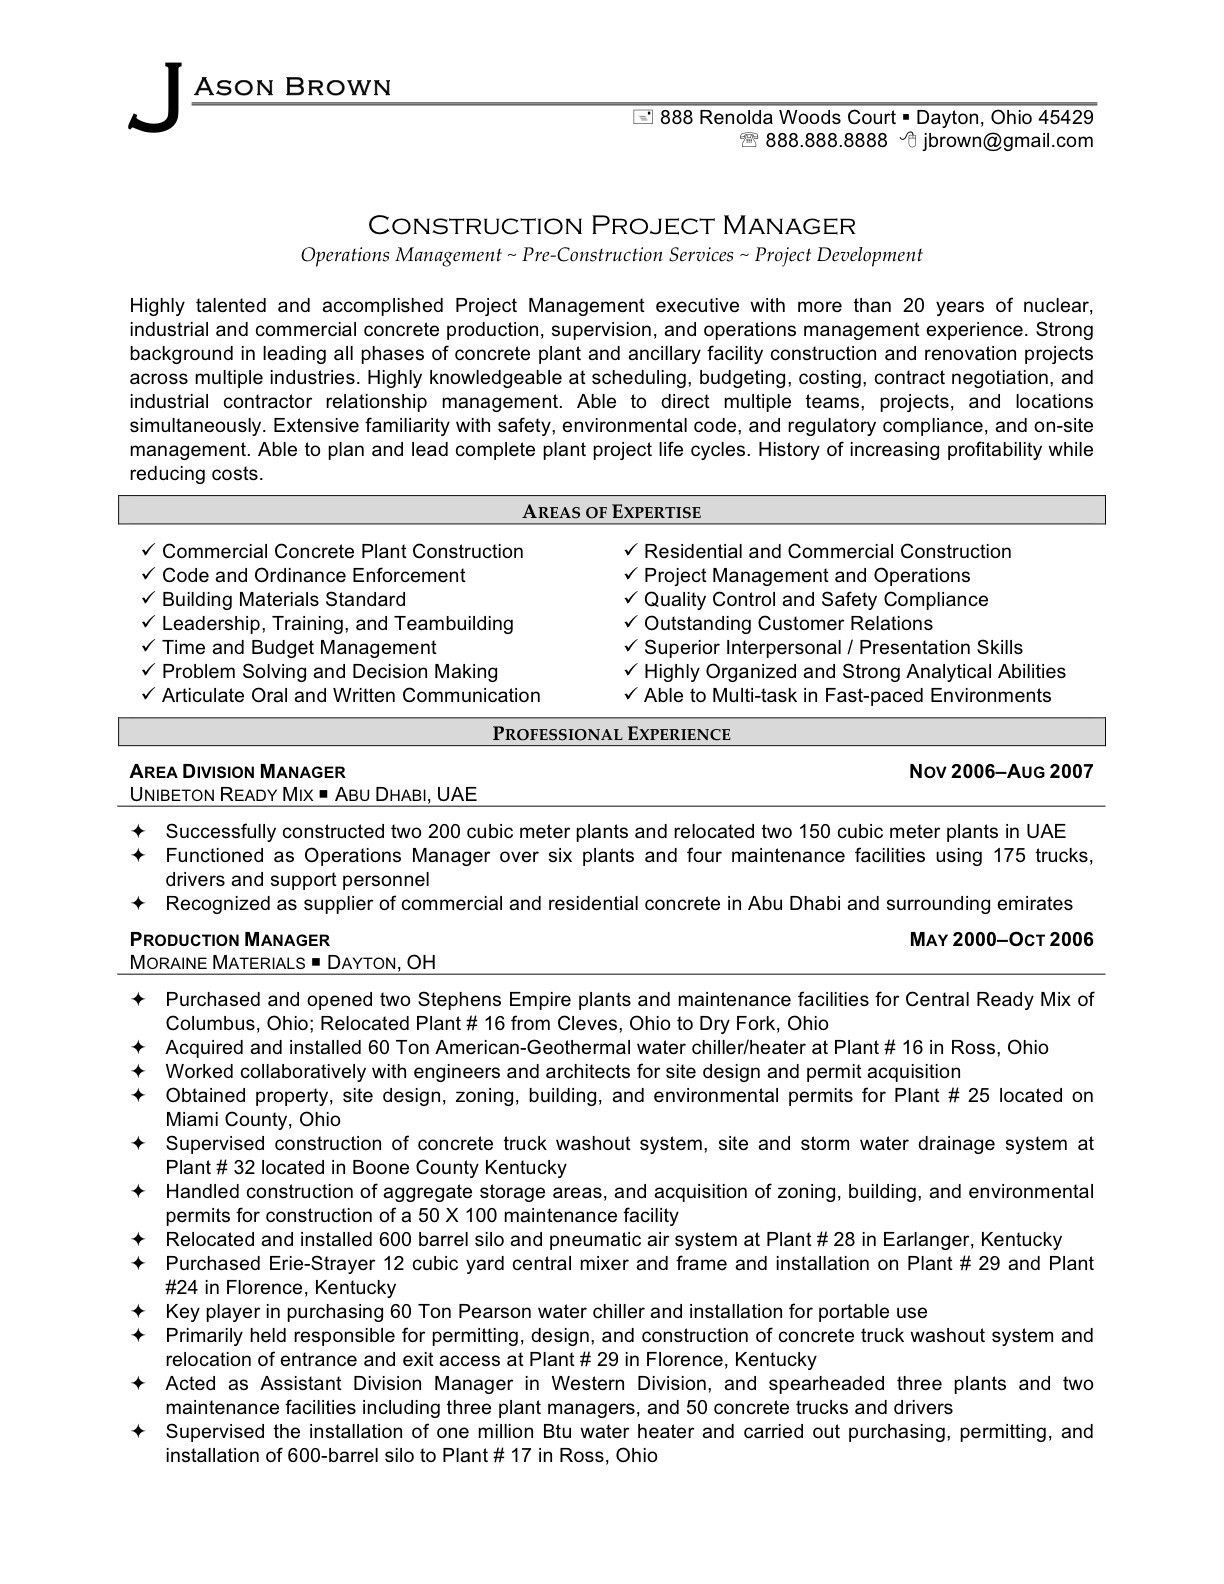 68 Cool Stock Of Resume Sample With Communication Skills Project Manager Resume Manager Resume Resume Skills